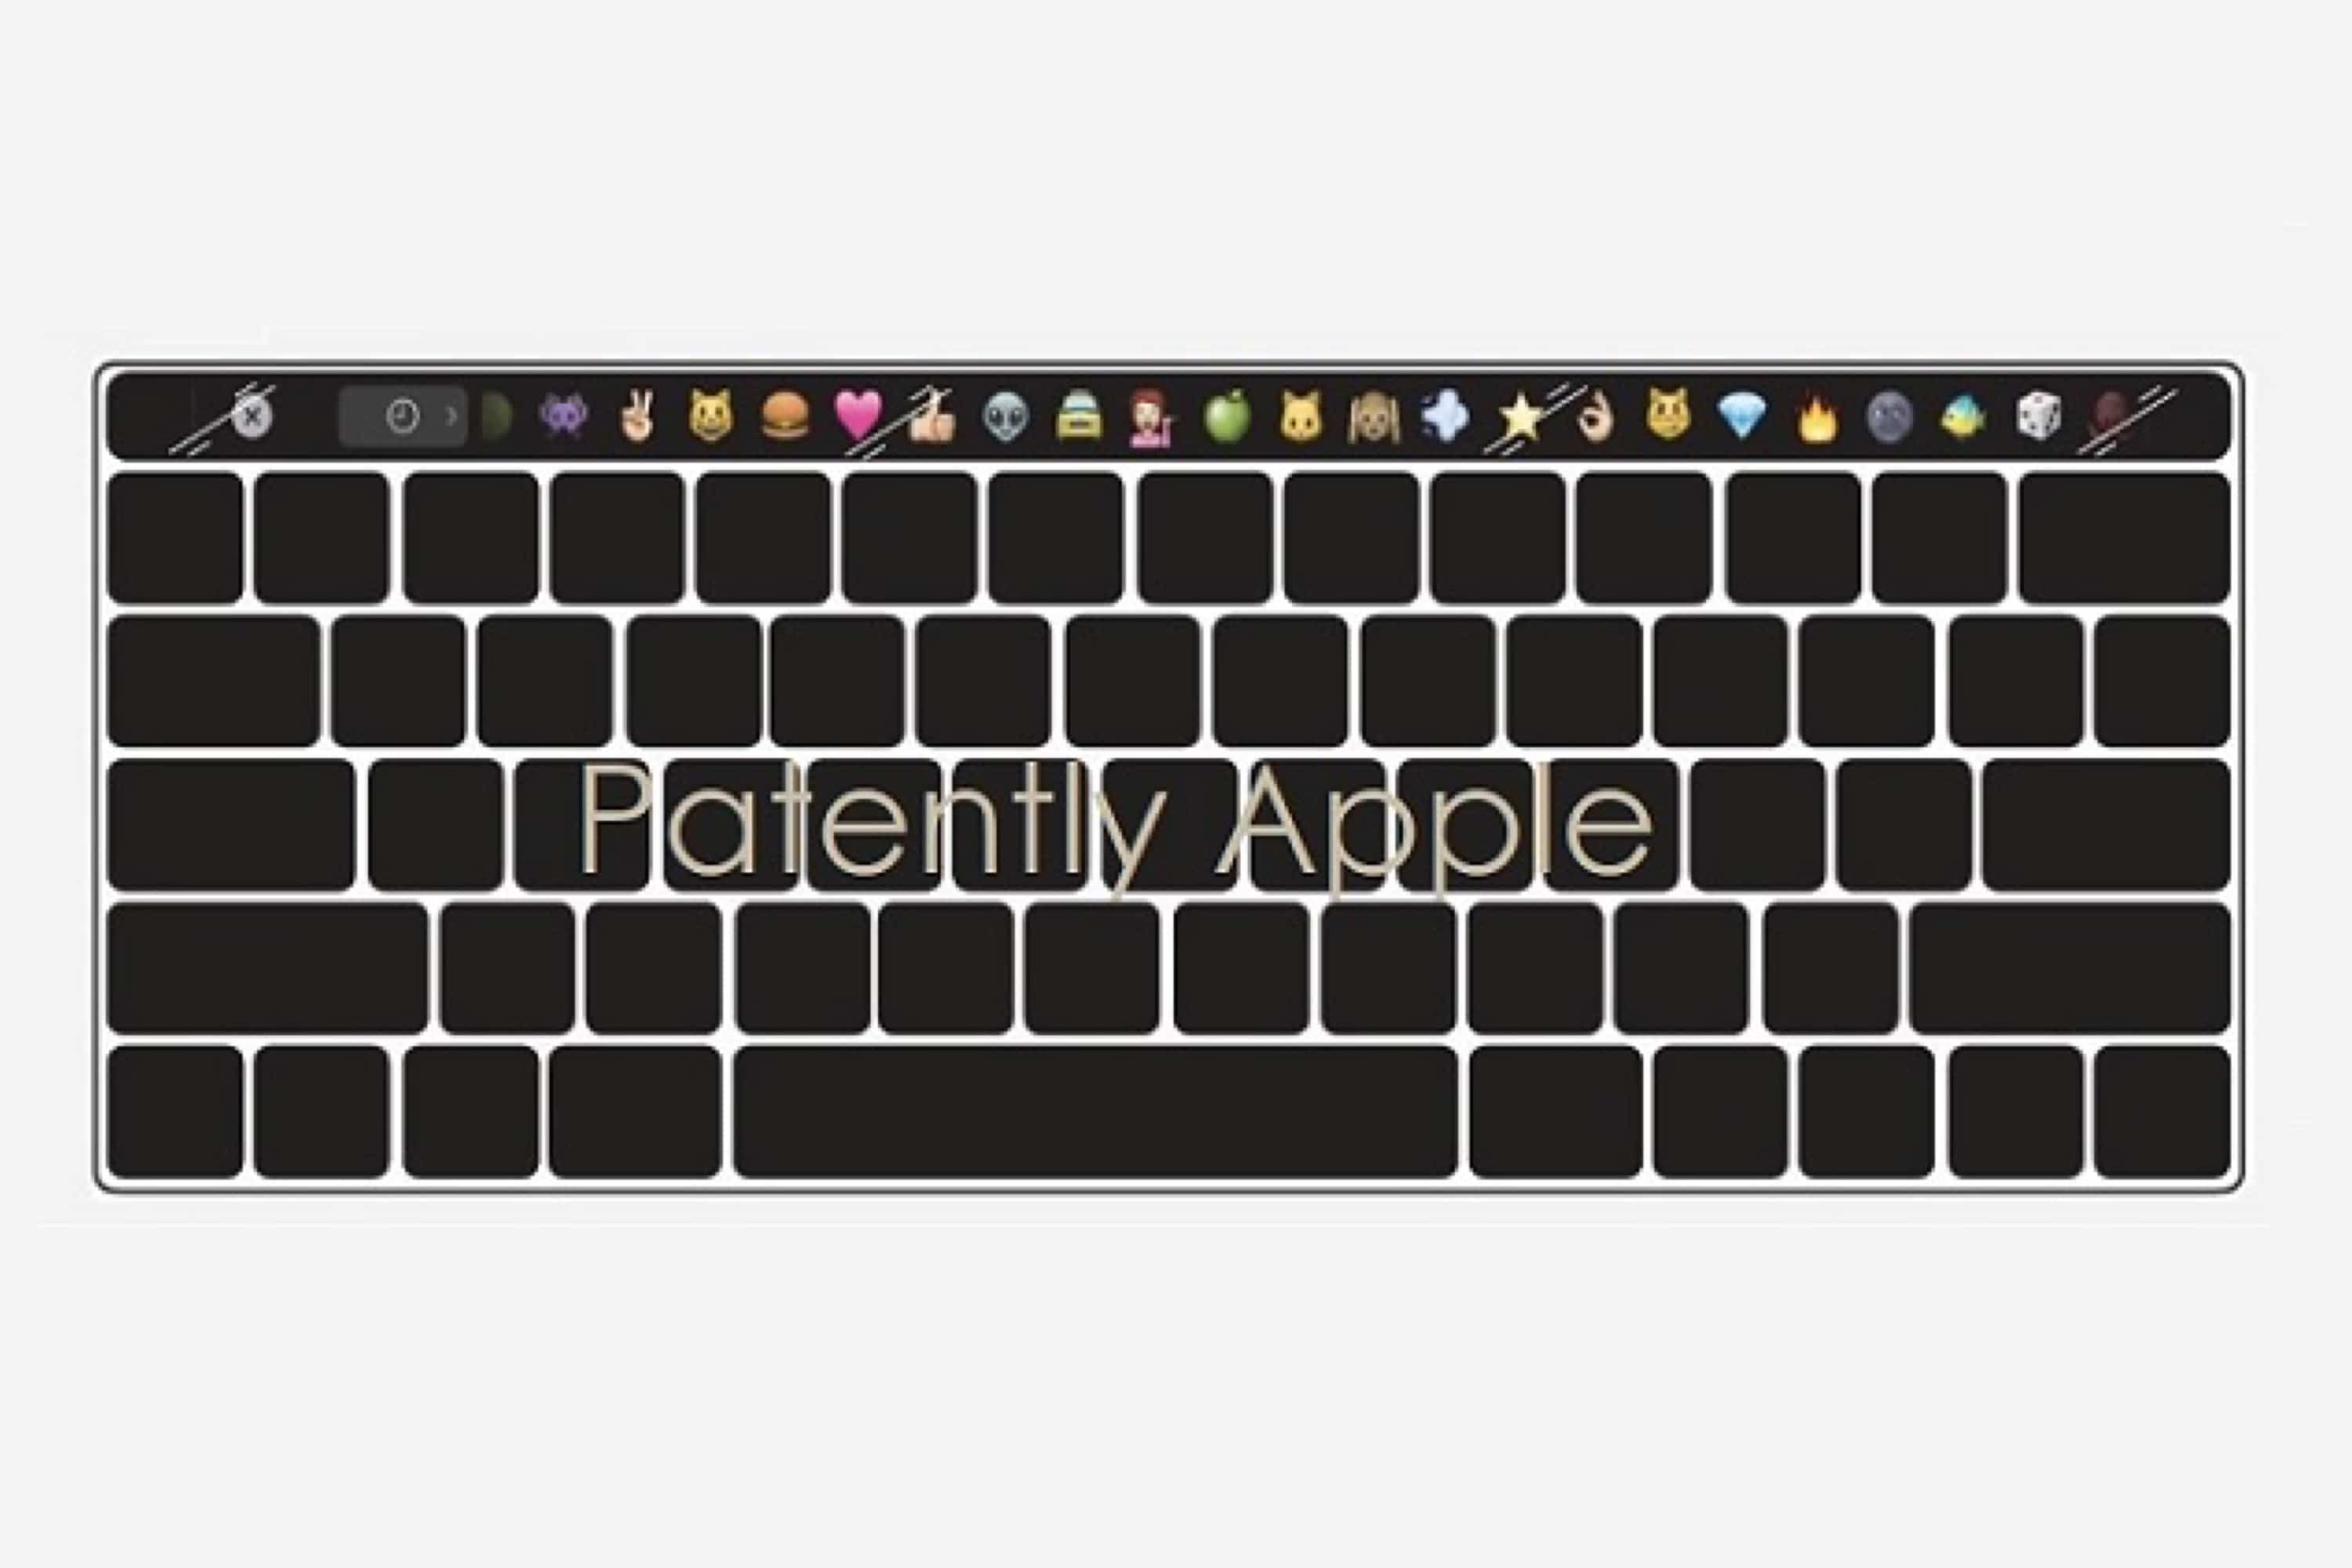 macbook-touch-bar-featuring-force-touch-appears-in-patent-20201126-1